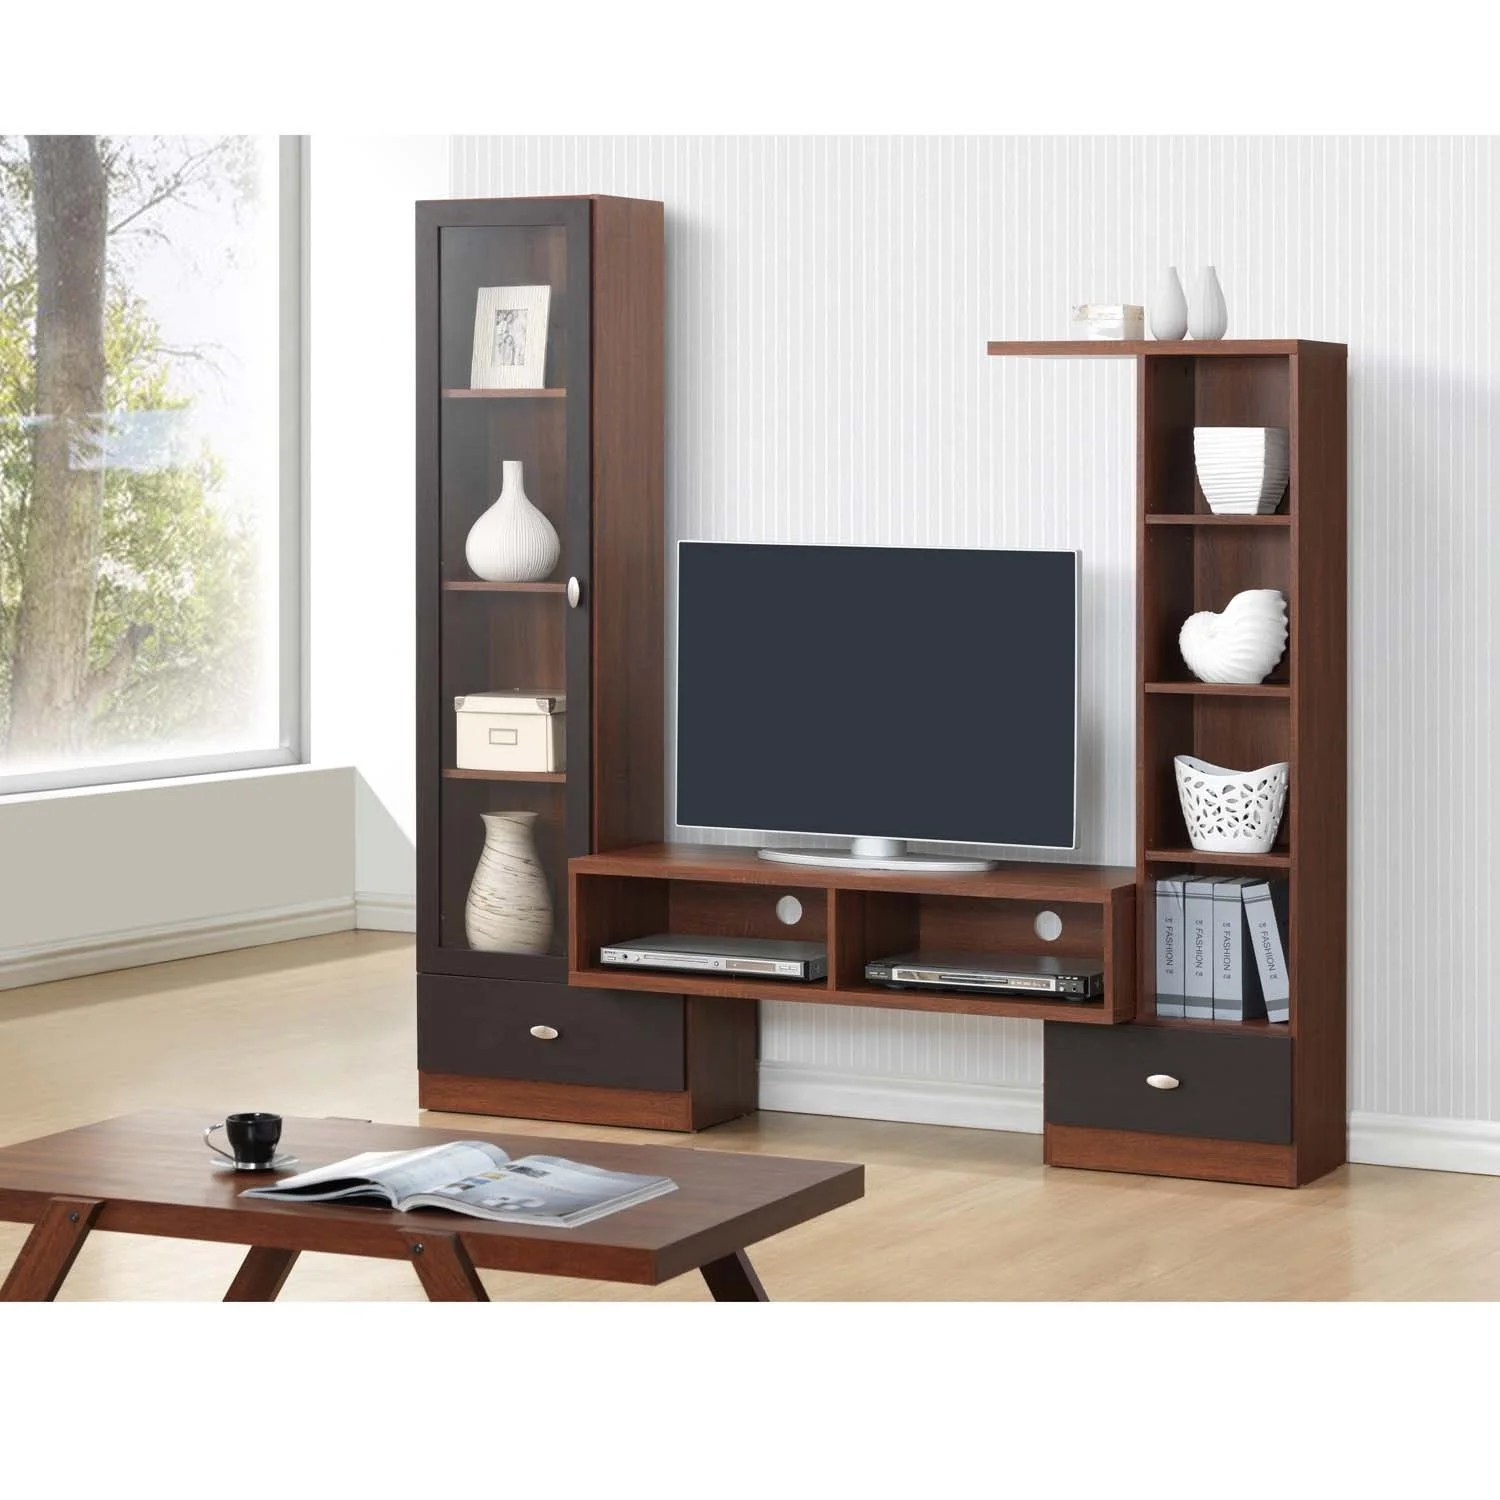 Design Tv Rack Cool Tv Rack With Tv Rack With Design Tv Rack Baxton Studio Empire Sonoma Oak Finishing Modern Tv Stand